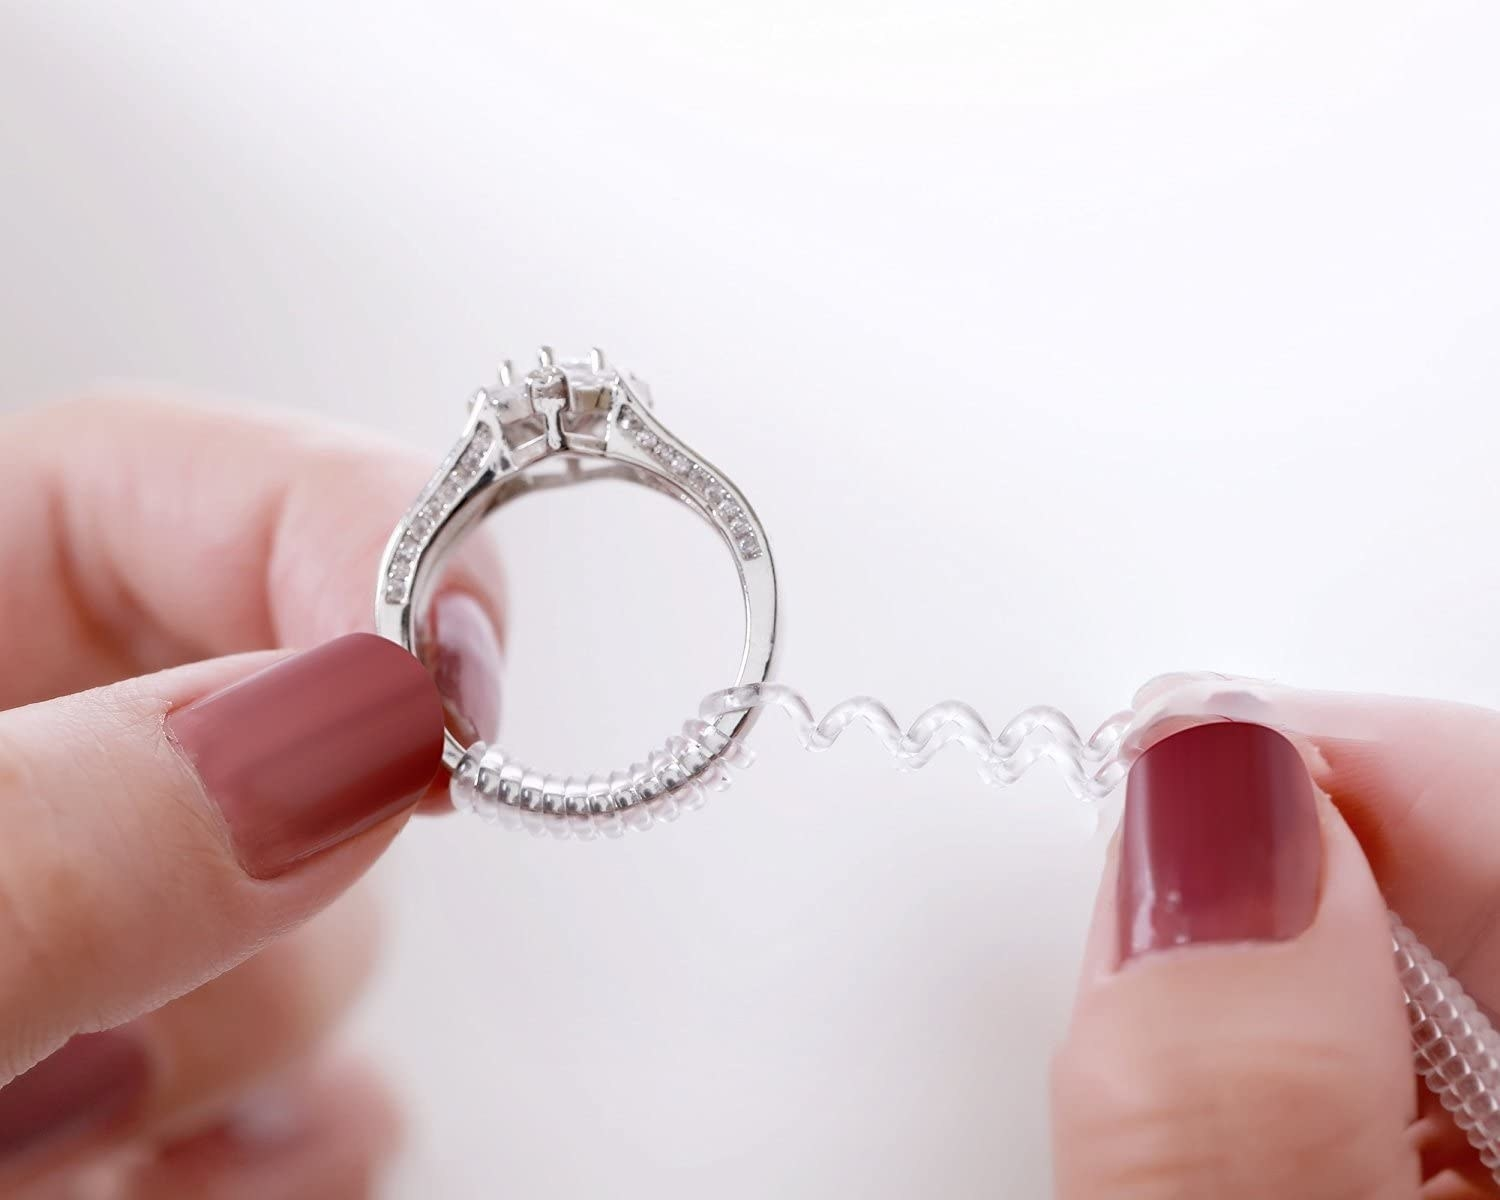 A person putting the ring adjuster onto a diamond ring